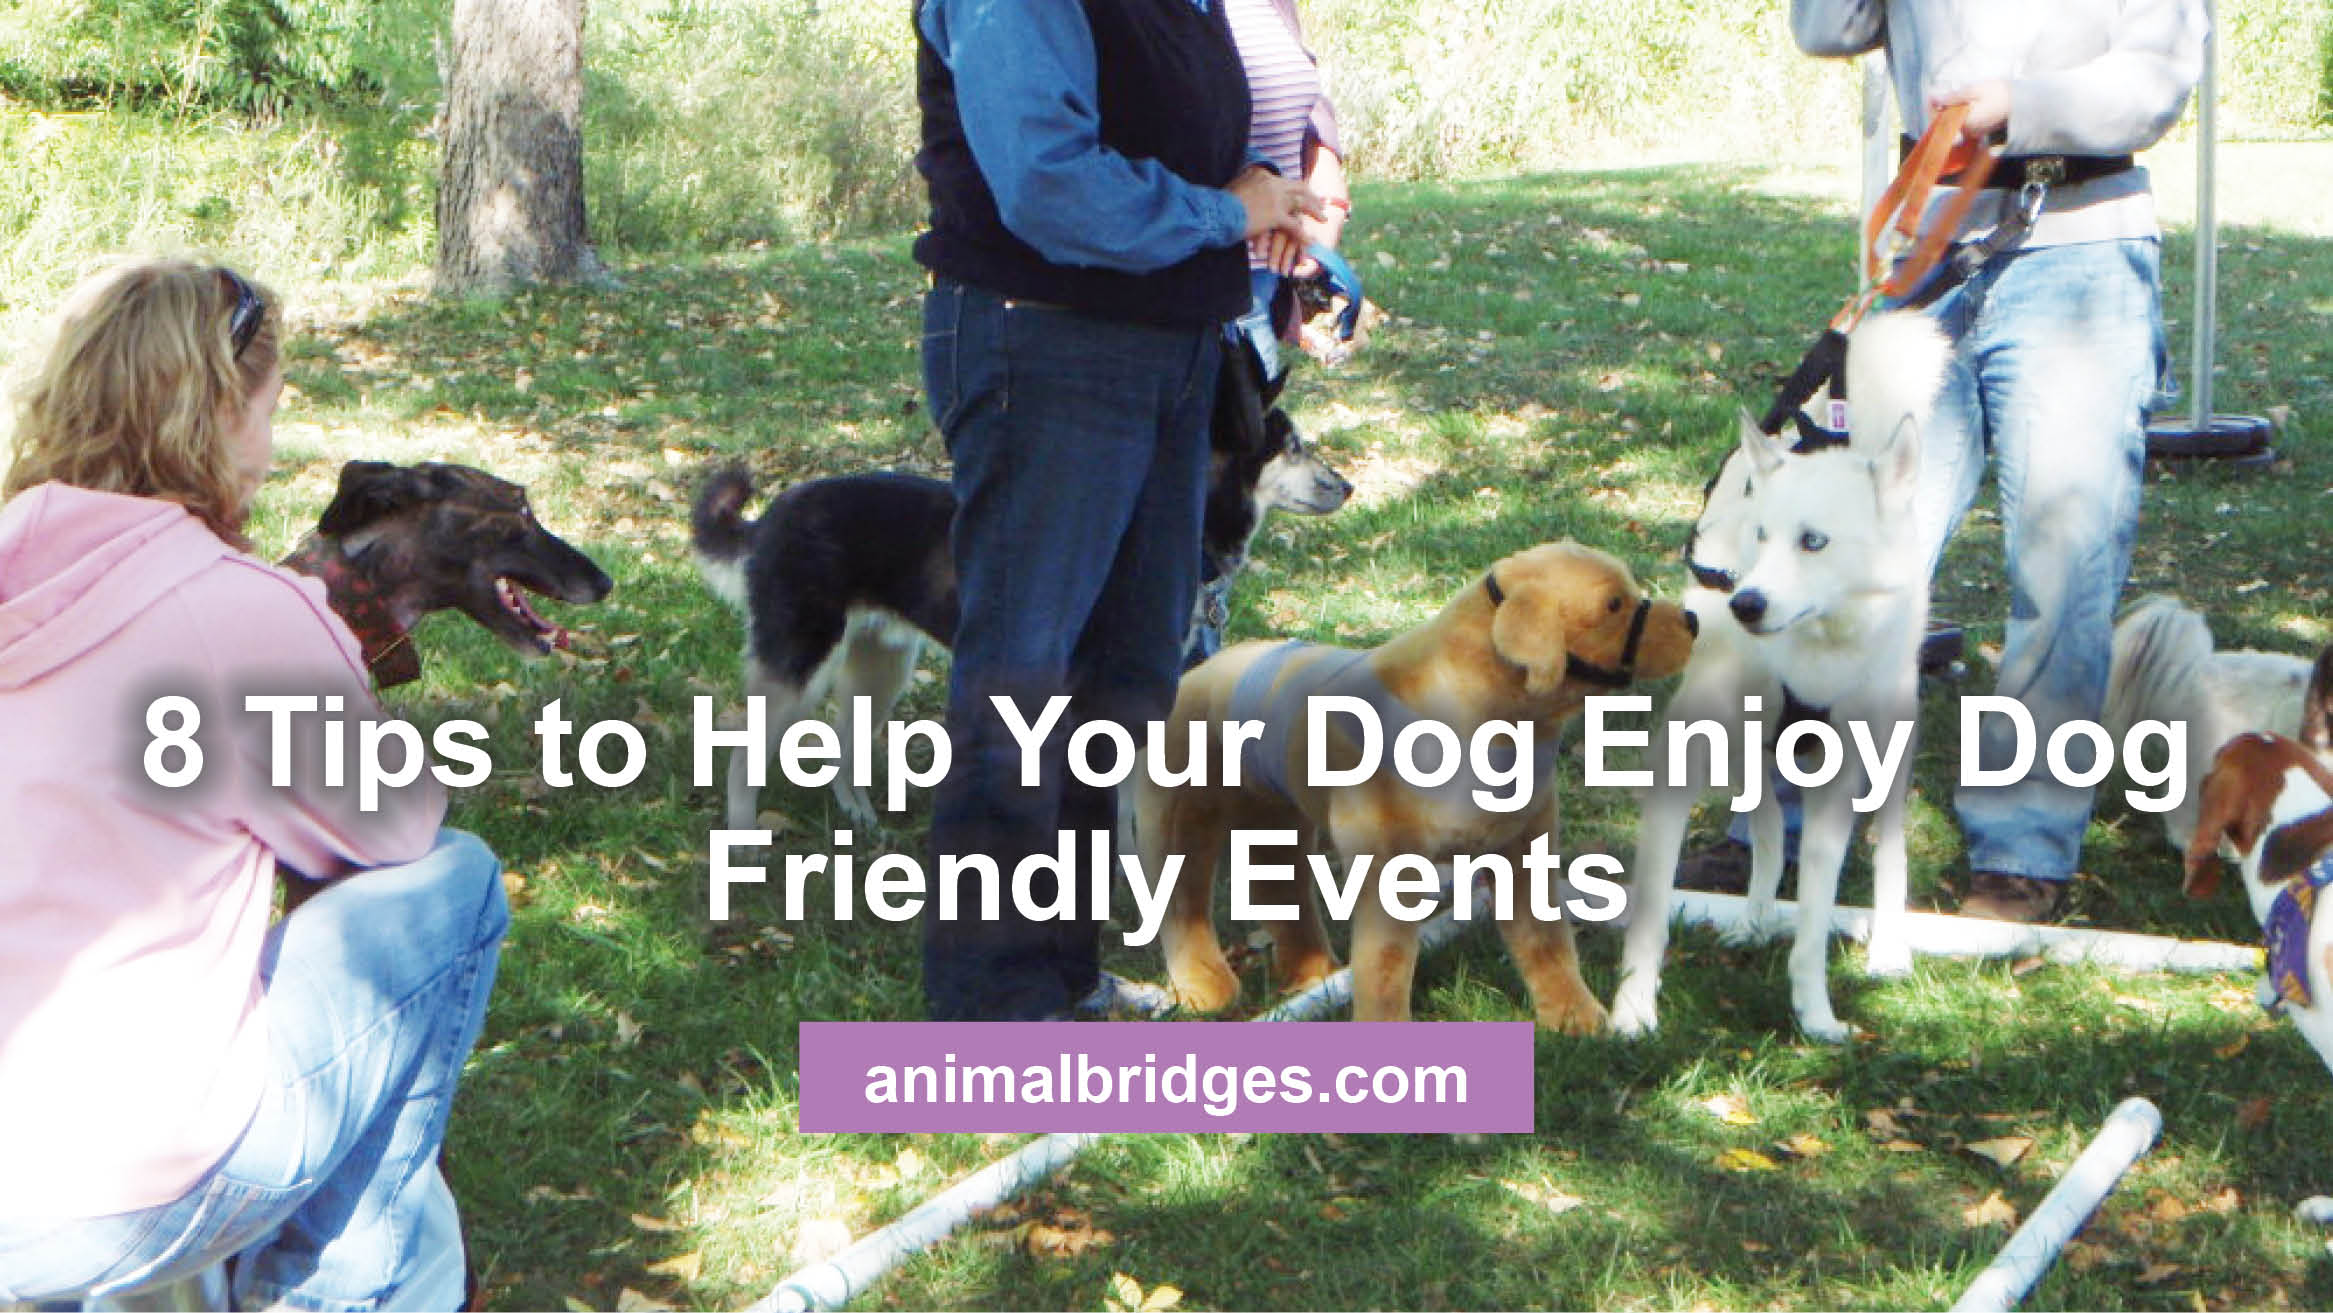 8 Tips to Help Your Dog Enjoy Dog Friendly Events